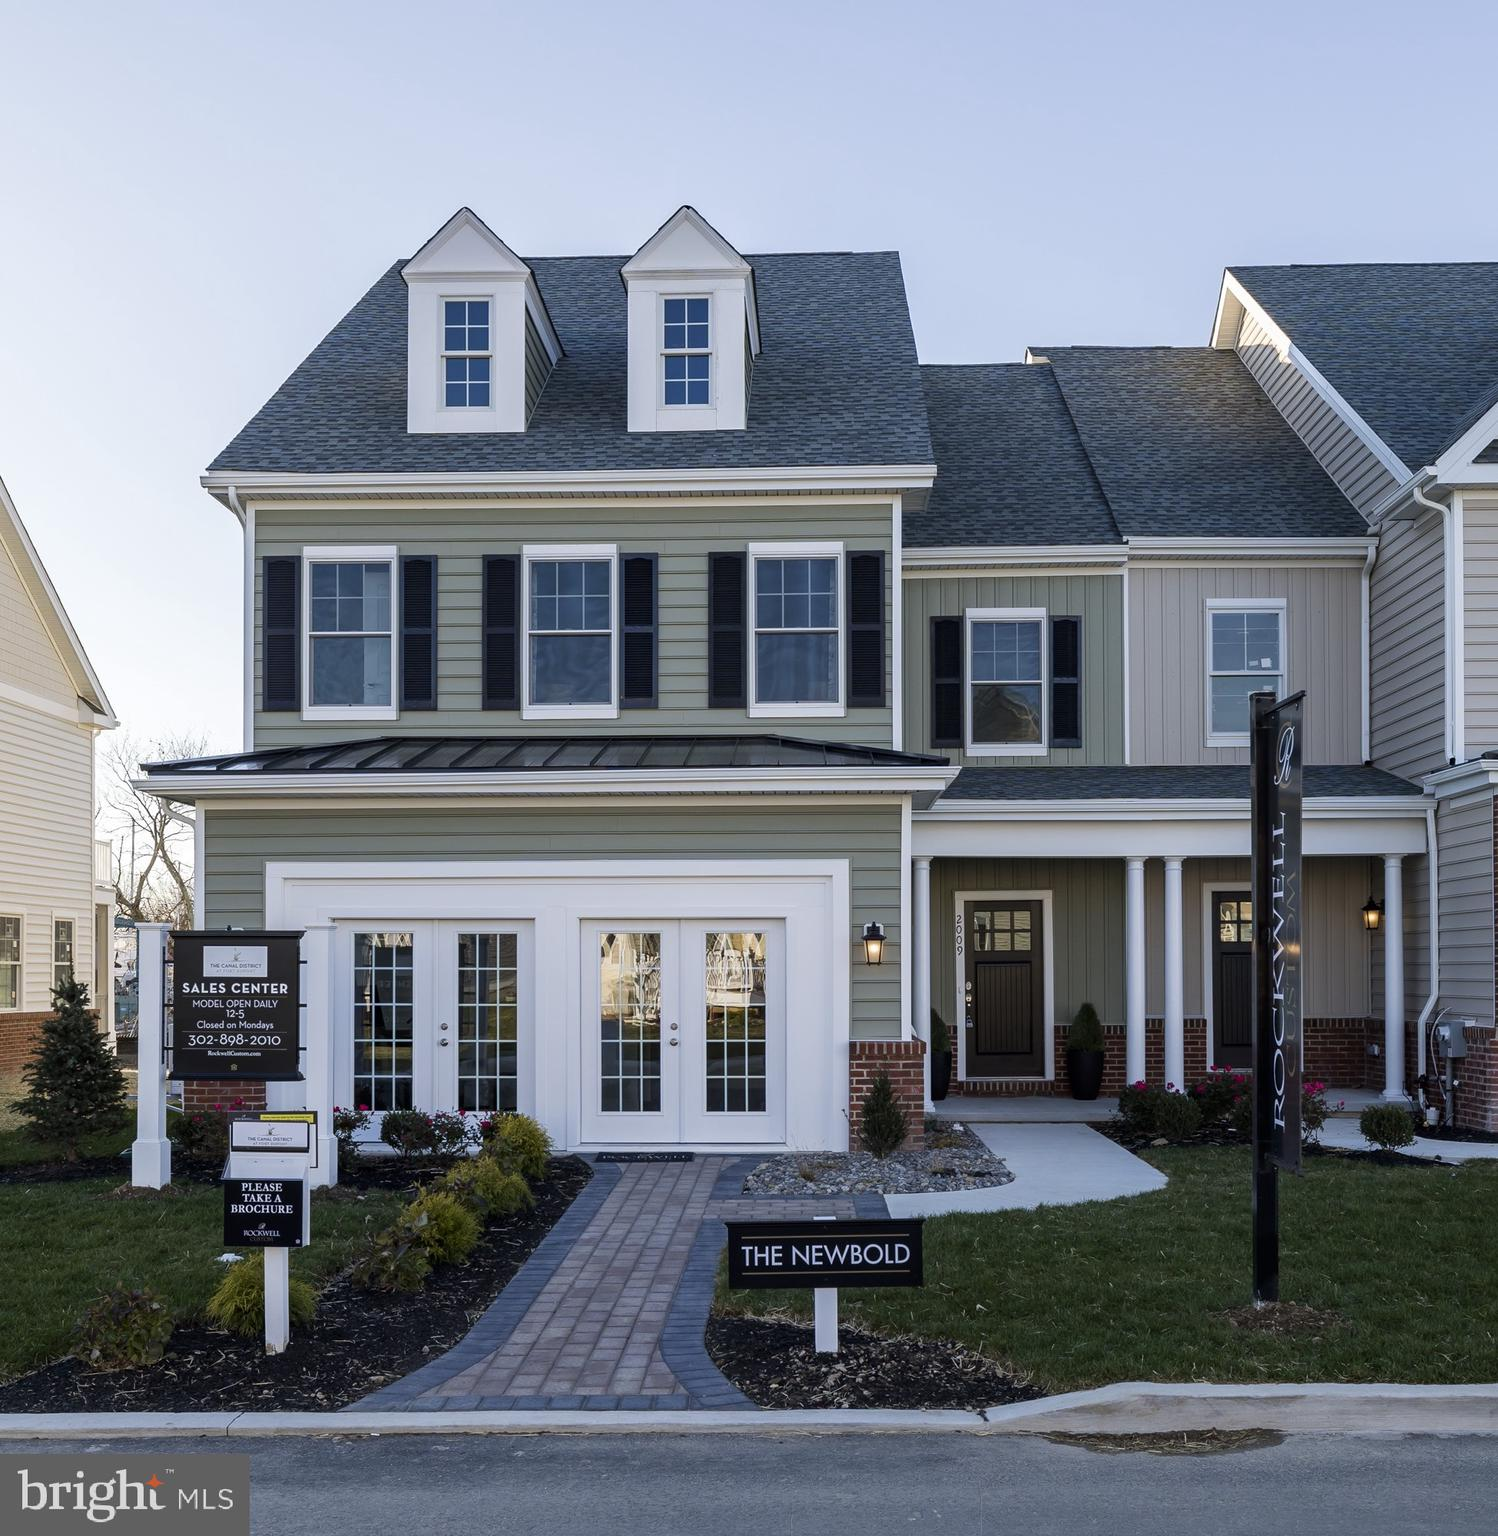 """Visit this home virtually: http://www.vht.com/434139415/IDXS - Overlooking the lovely Branch Canal right on the waterside, this brand new custom carriage-style townhome featuring double decks...is a unique opportunity in New Castle County. Located in The Canal District at Fort DuPont. This floor plan features an open concept on the main floor with 3 bedrooms upstairs and a total 2.5 baths. This home also features a 2-car garage. The impressive kitchen is well appointed with granite counter tops, 42"""" custom cabinets with trim and soft close hardware and a massive island perfect for entertaining. The owner's bedroom has serene views and spacious walk-in closet. The homes are close to downtown and community boat access for outdoor activities year round. With future shops to include a restaurant, Beer Garden, a Theater district along with an expanded Marina District... making Fort DuPont the new sought after Riverfront in Delaware and the lifestyle you have always craved. With Wilmington, Newark, Dover, Christiana and the southern beaches a short drive away, you will love being close to everything yet nestled in a quiet setting. This home is currently under construction/to be built. Photos are for marketing purposes only and are not of the actual house. Visit the Sales Center Tuesday-Sunday 12:00-5:00. Home can be shown with scheduled appointment as well. County, City, School taxes, property assessment value and Square Footage are approximate amounts. Homes to be built. Stop by the Sales Center for additional information and check out the builder incentives for this month!"""